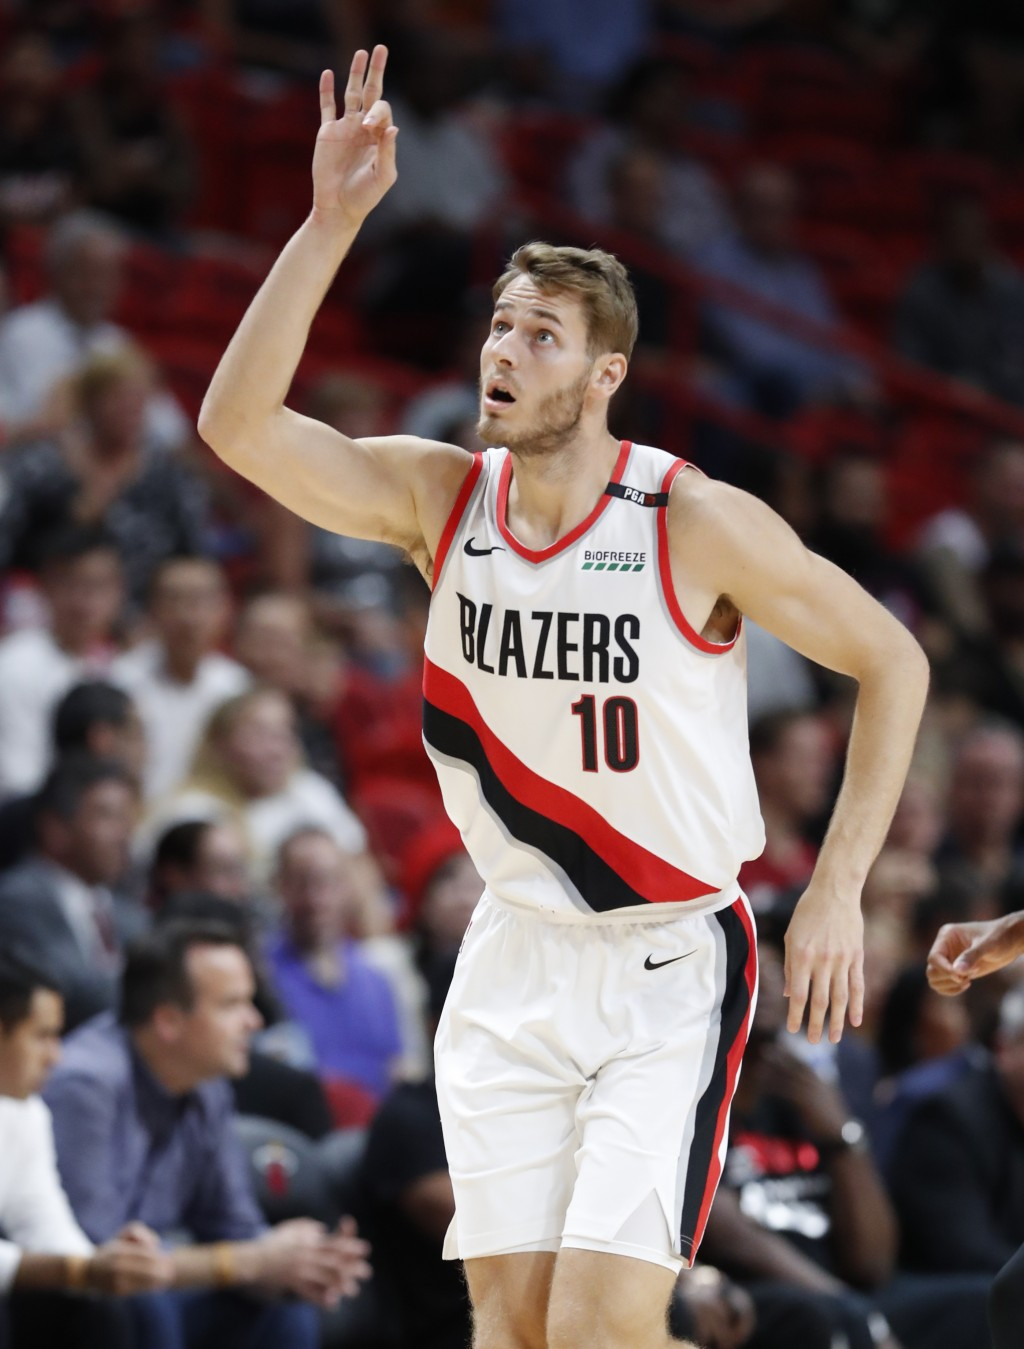 Portland Trail Blazers forward Jake Layman celebrates a three-point shot during the first half of an NBA basketball game against the Miami Heat, Satur...